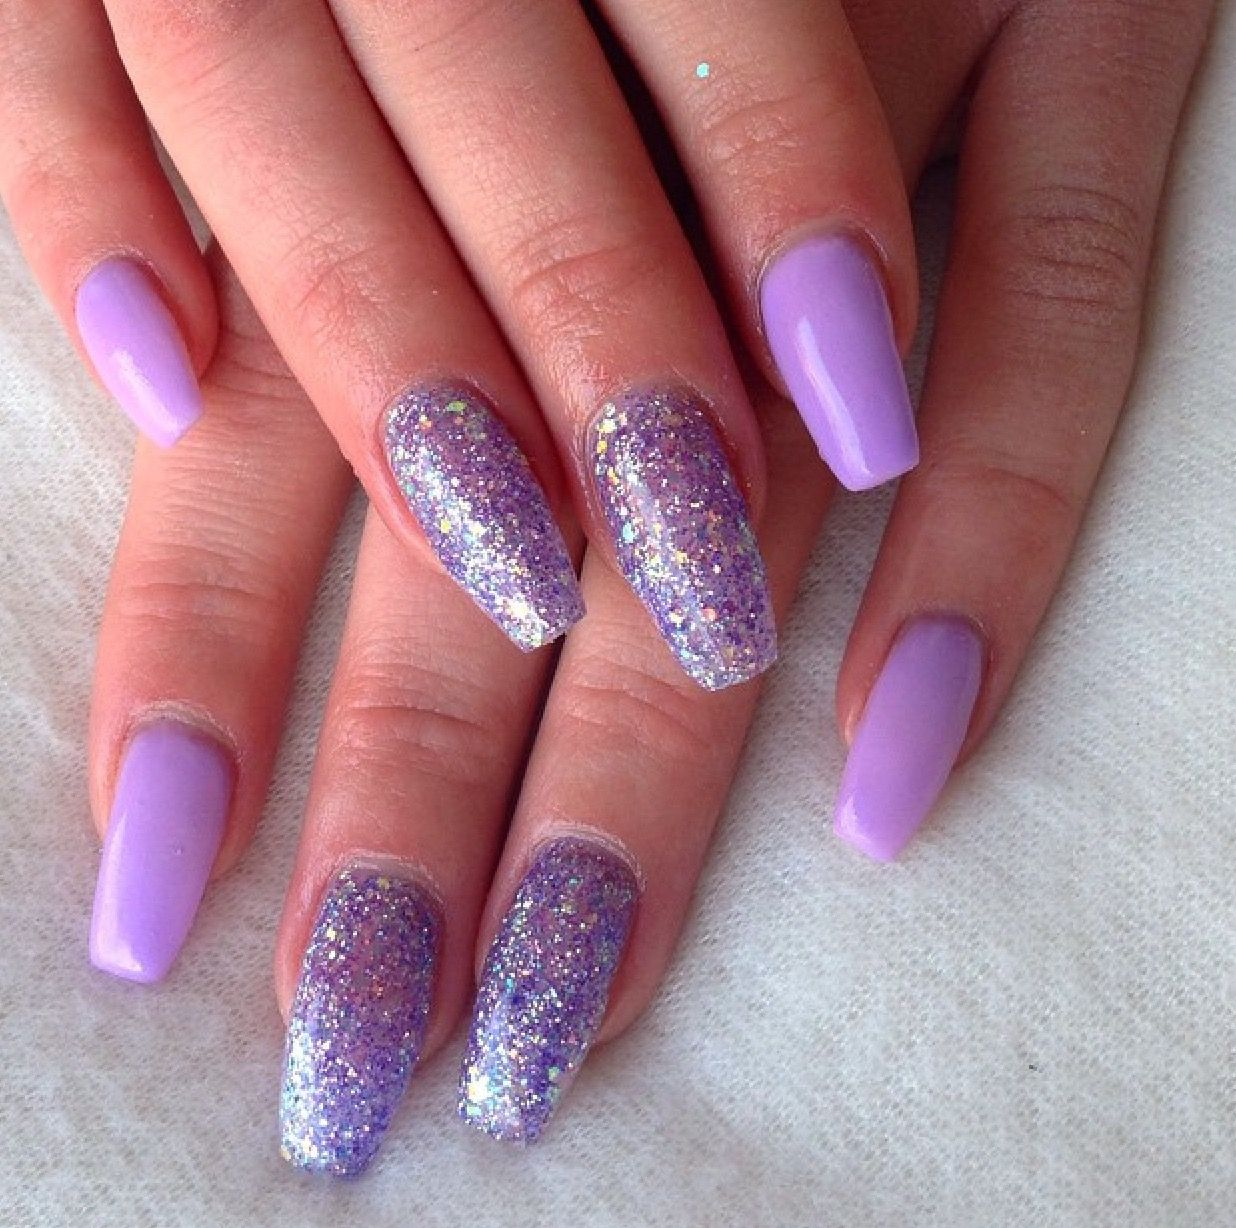 Pin By Tish On Nails Pinterest